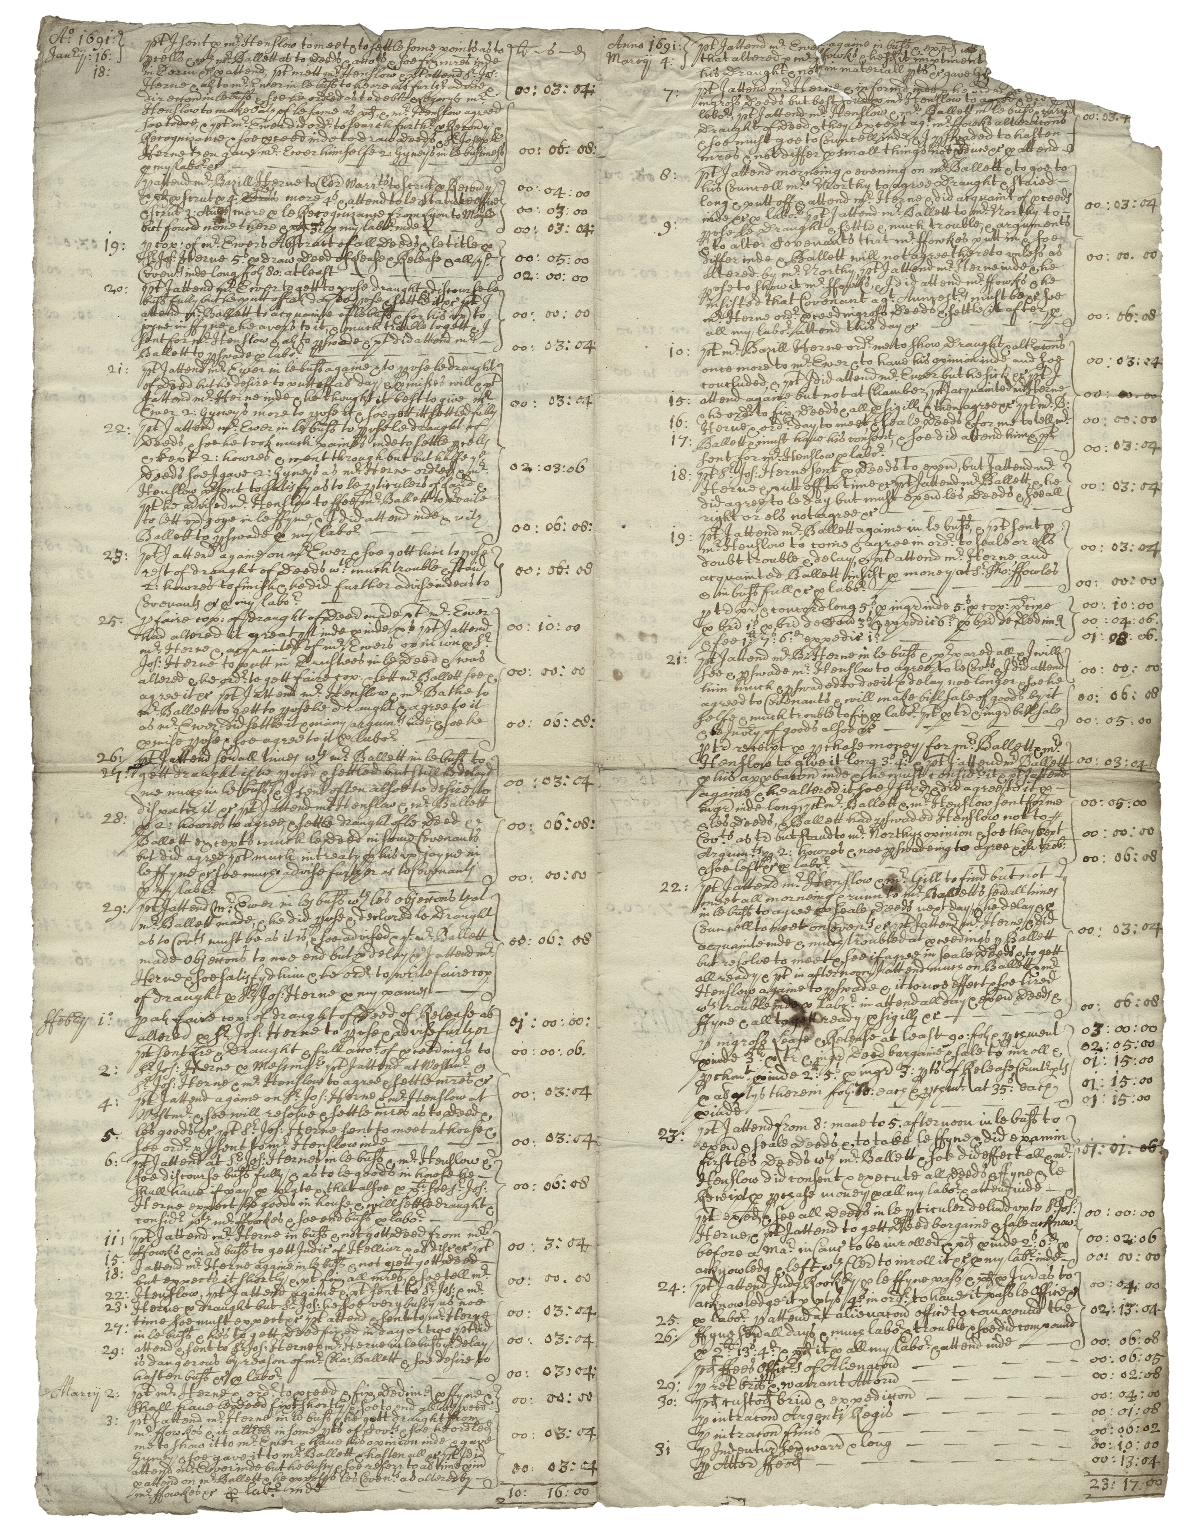 Receipted bill from Edward Hobart to Sir Joseph Herne